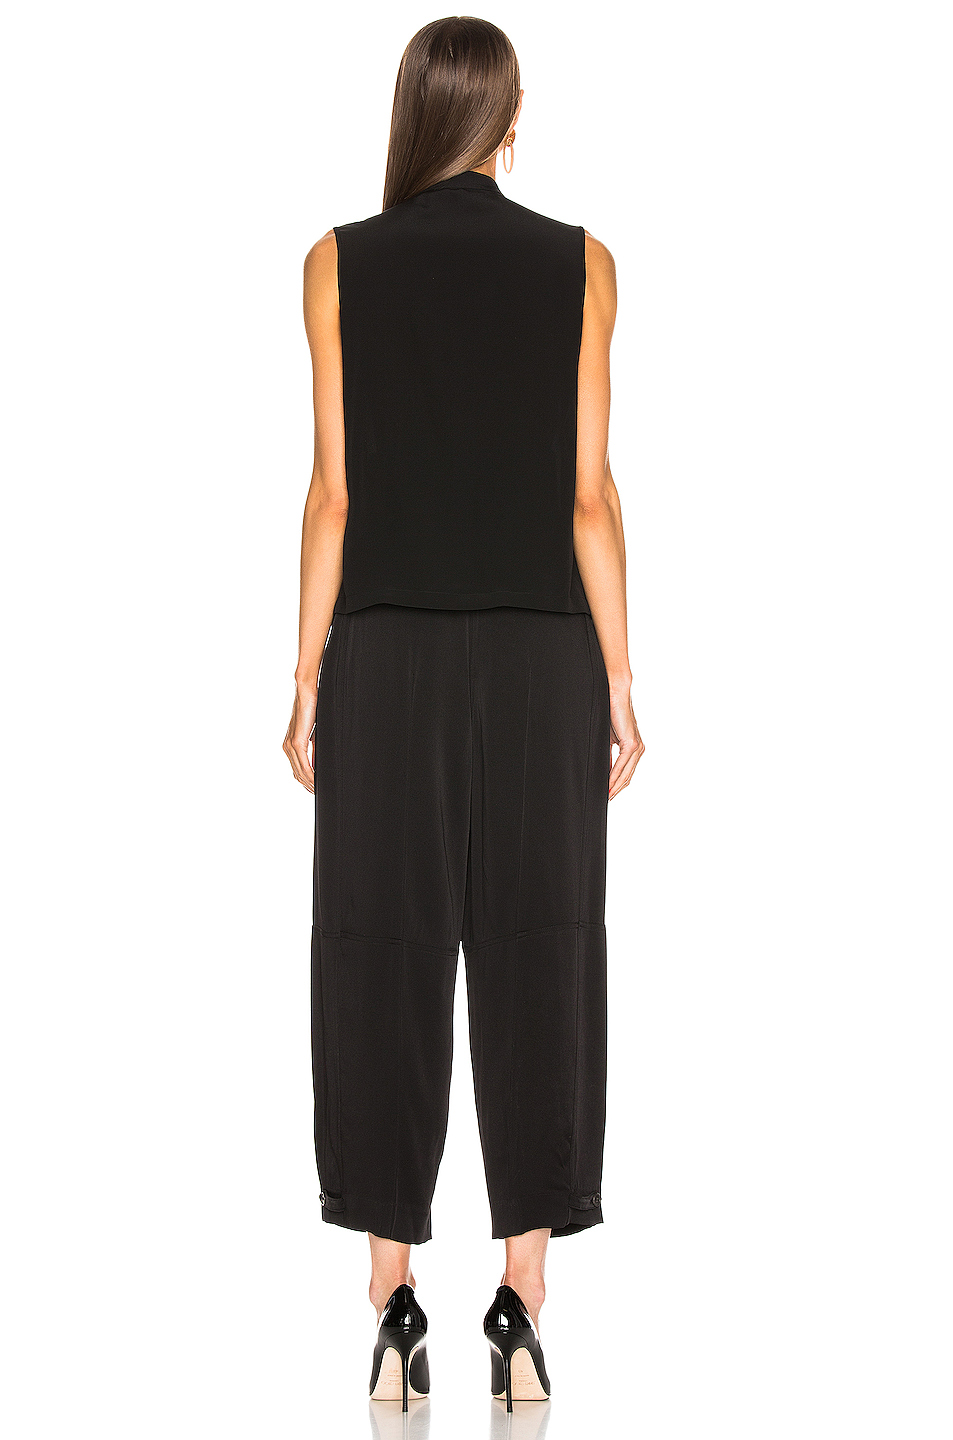 Givenchy Cropped Sleeveless Scarf Top